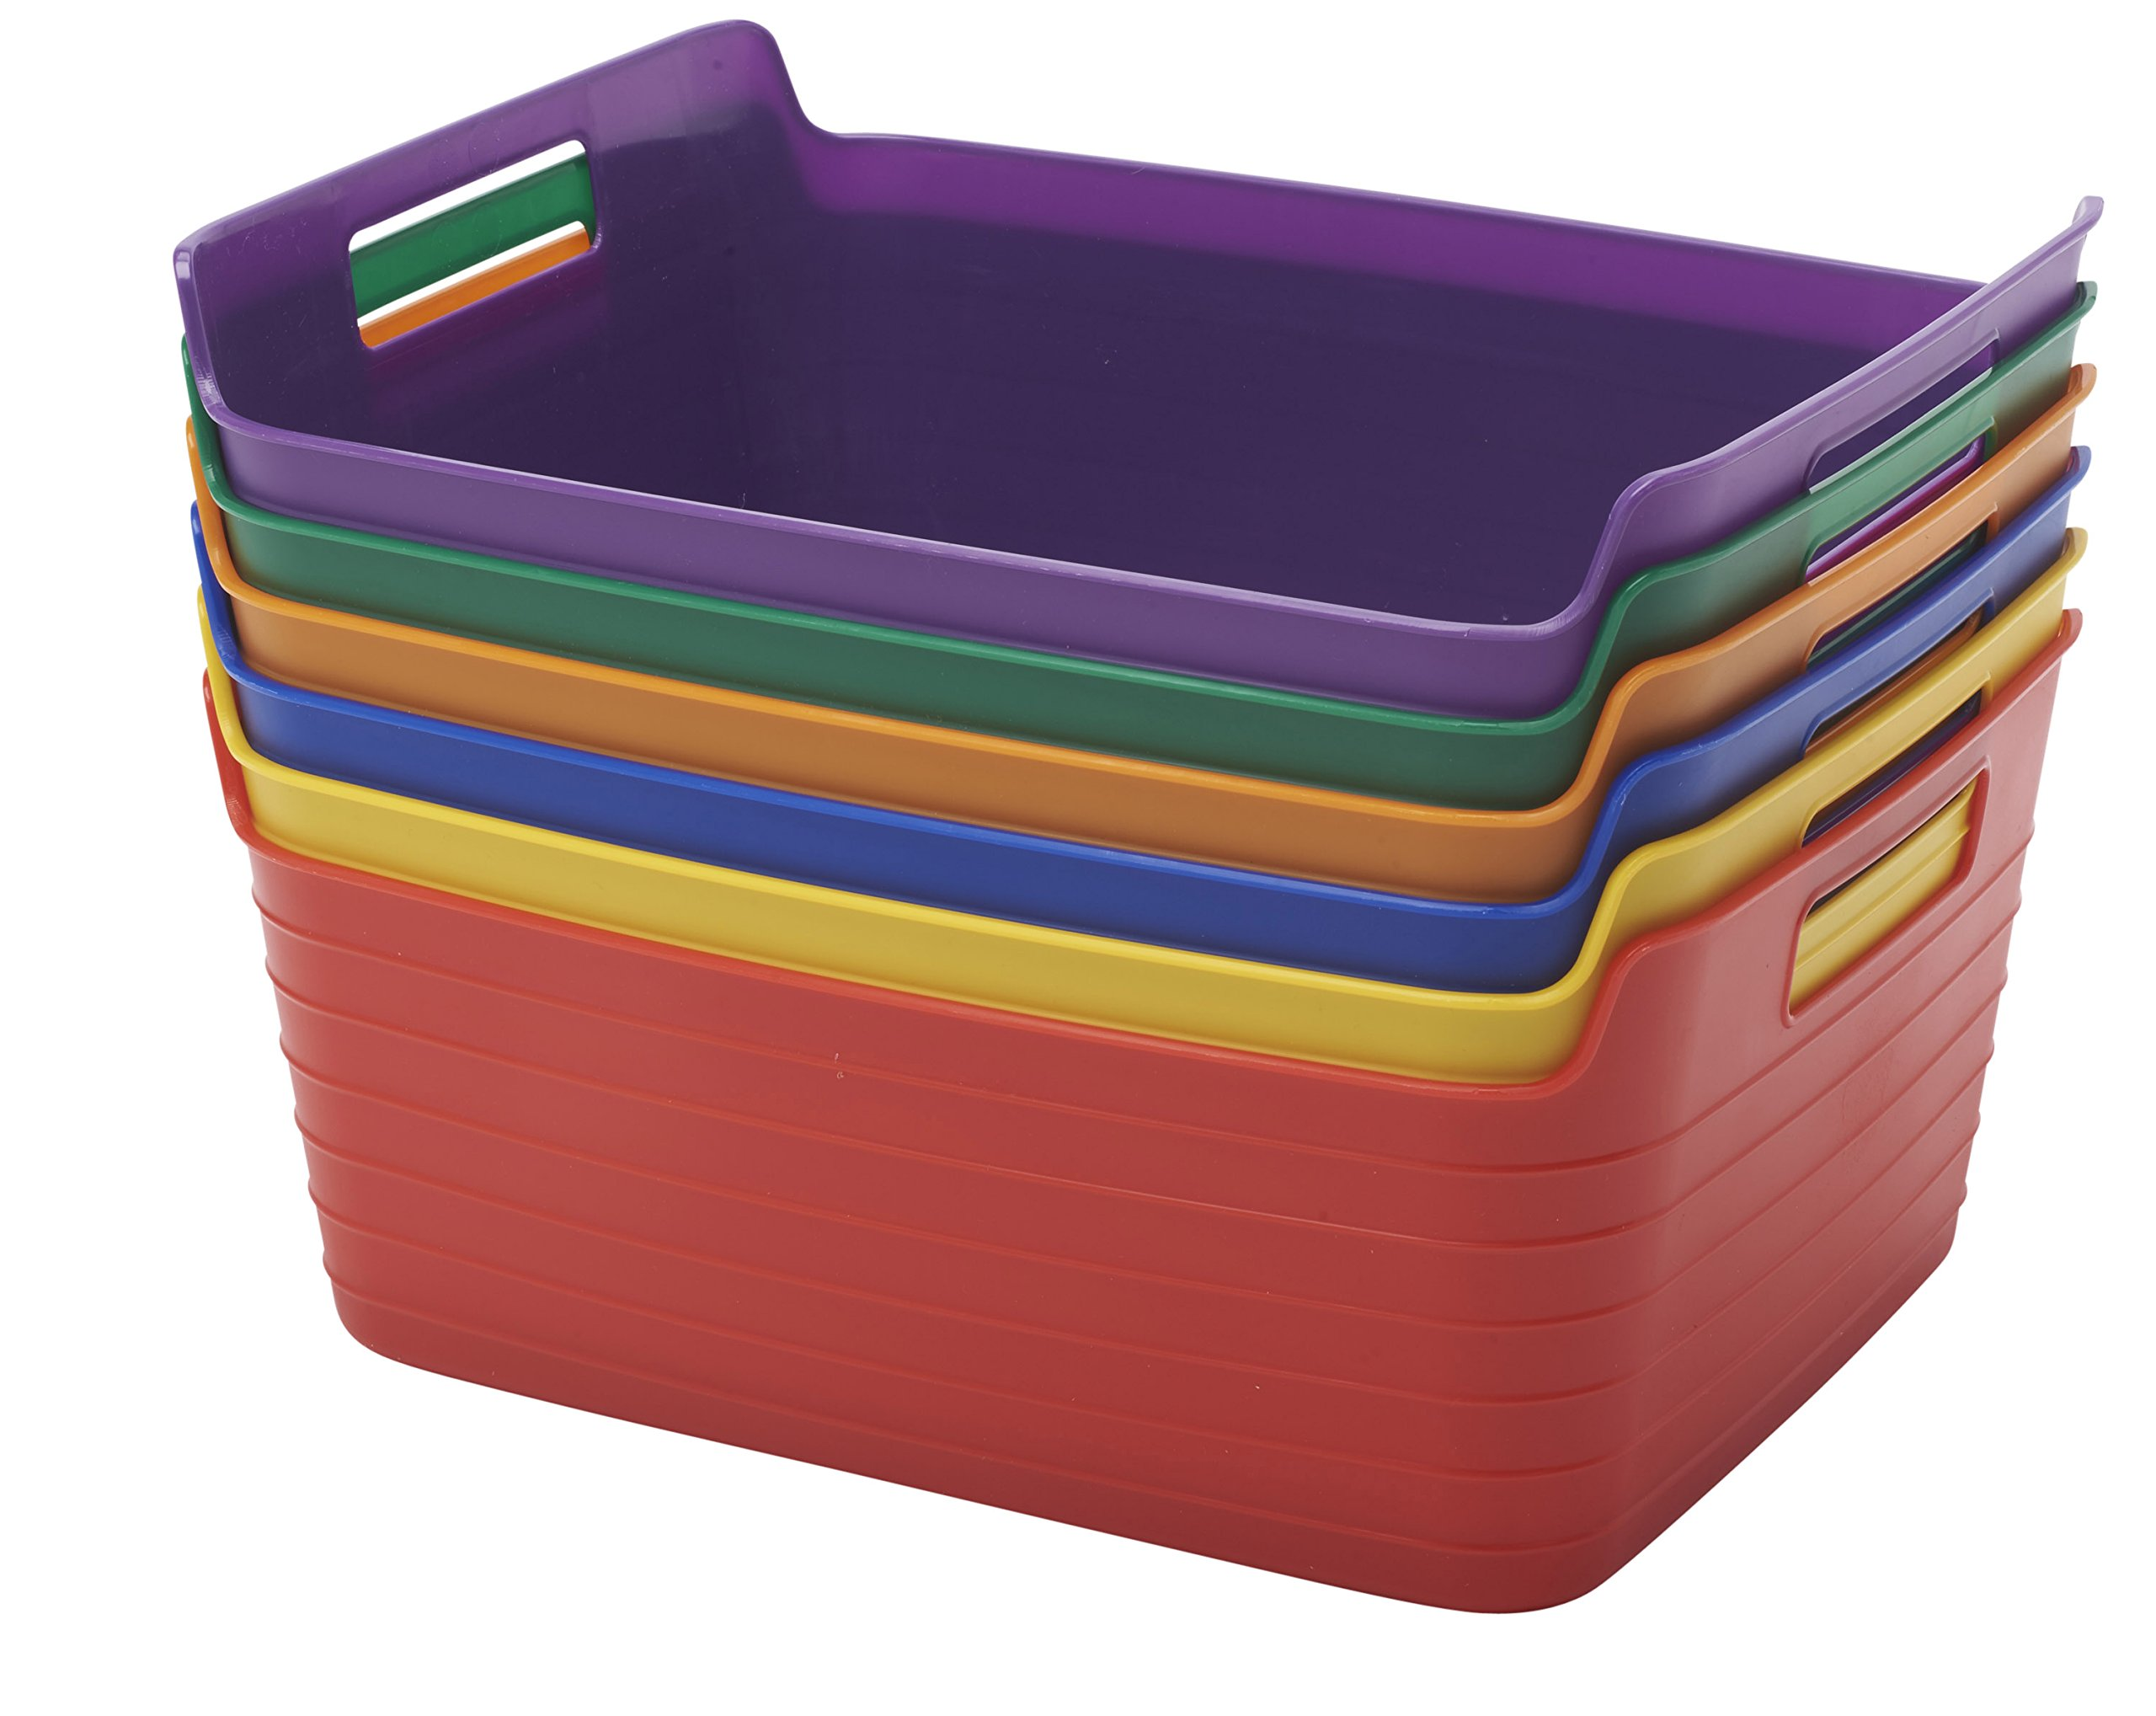 ECR4Kids Assorted Large Bendi-Bins with Handles, Stackable Plastic Storage Bins for Toys and More, Assorted Colors (6-Pack) by ECR4Kids